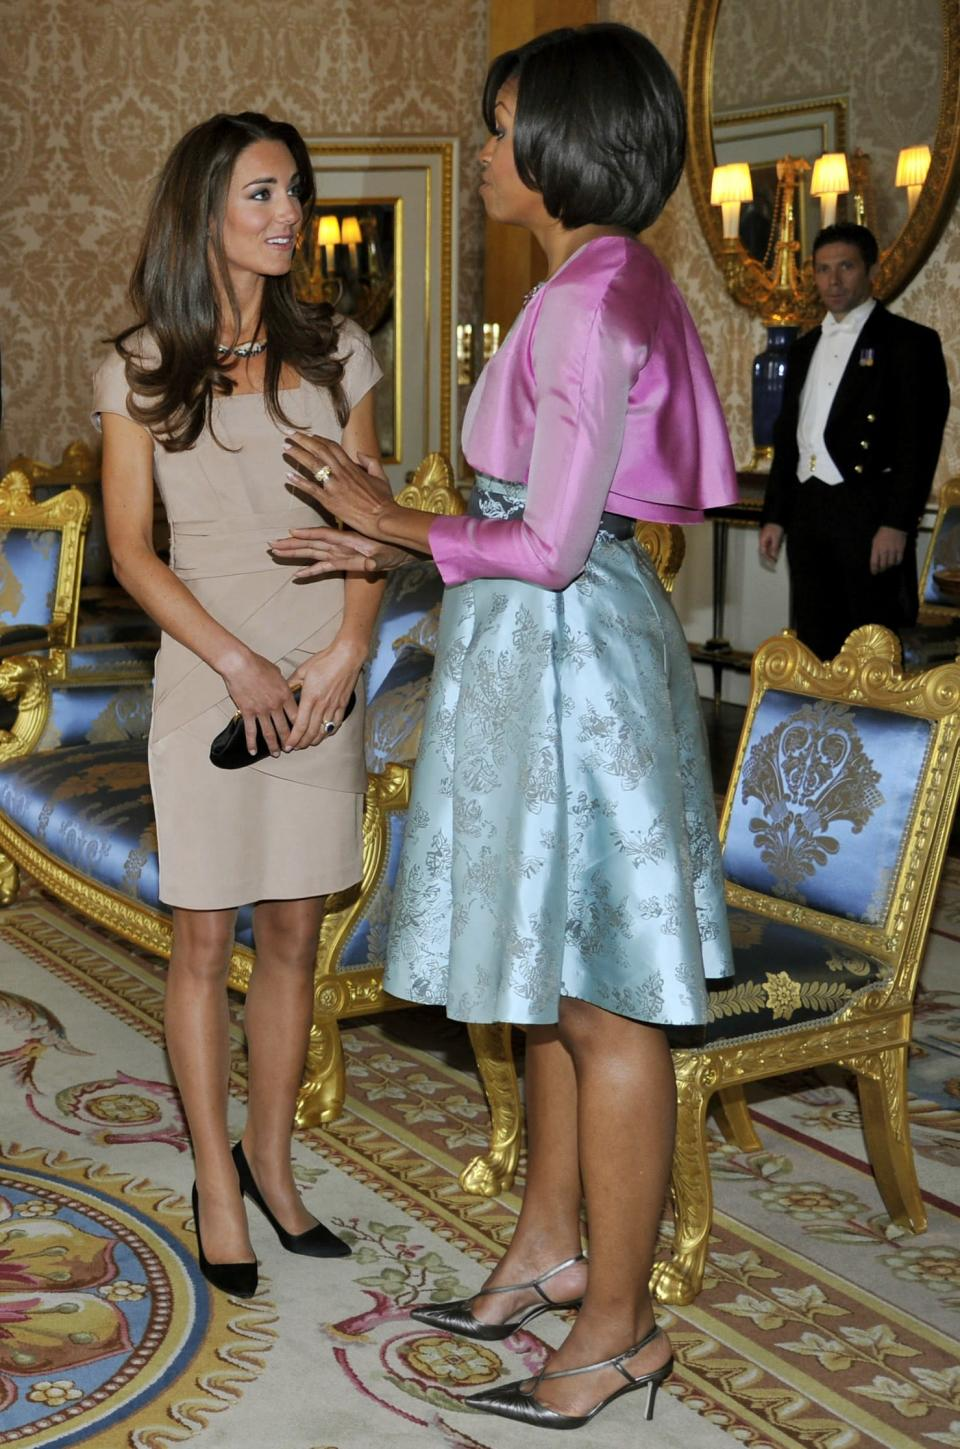 <p>Back in May 2011, the Duke and Duchess of Cambridge visited the White House. And for the momentous occasion, Kate Middleton chose an oatmeal-hued dress by high-street favourite, Reiss. Unsurprisingly, the 'Orla' dress crashed the website in a matter of hours. <em>[Photo: Getty]</em> </p>